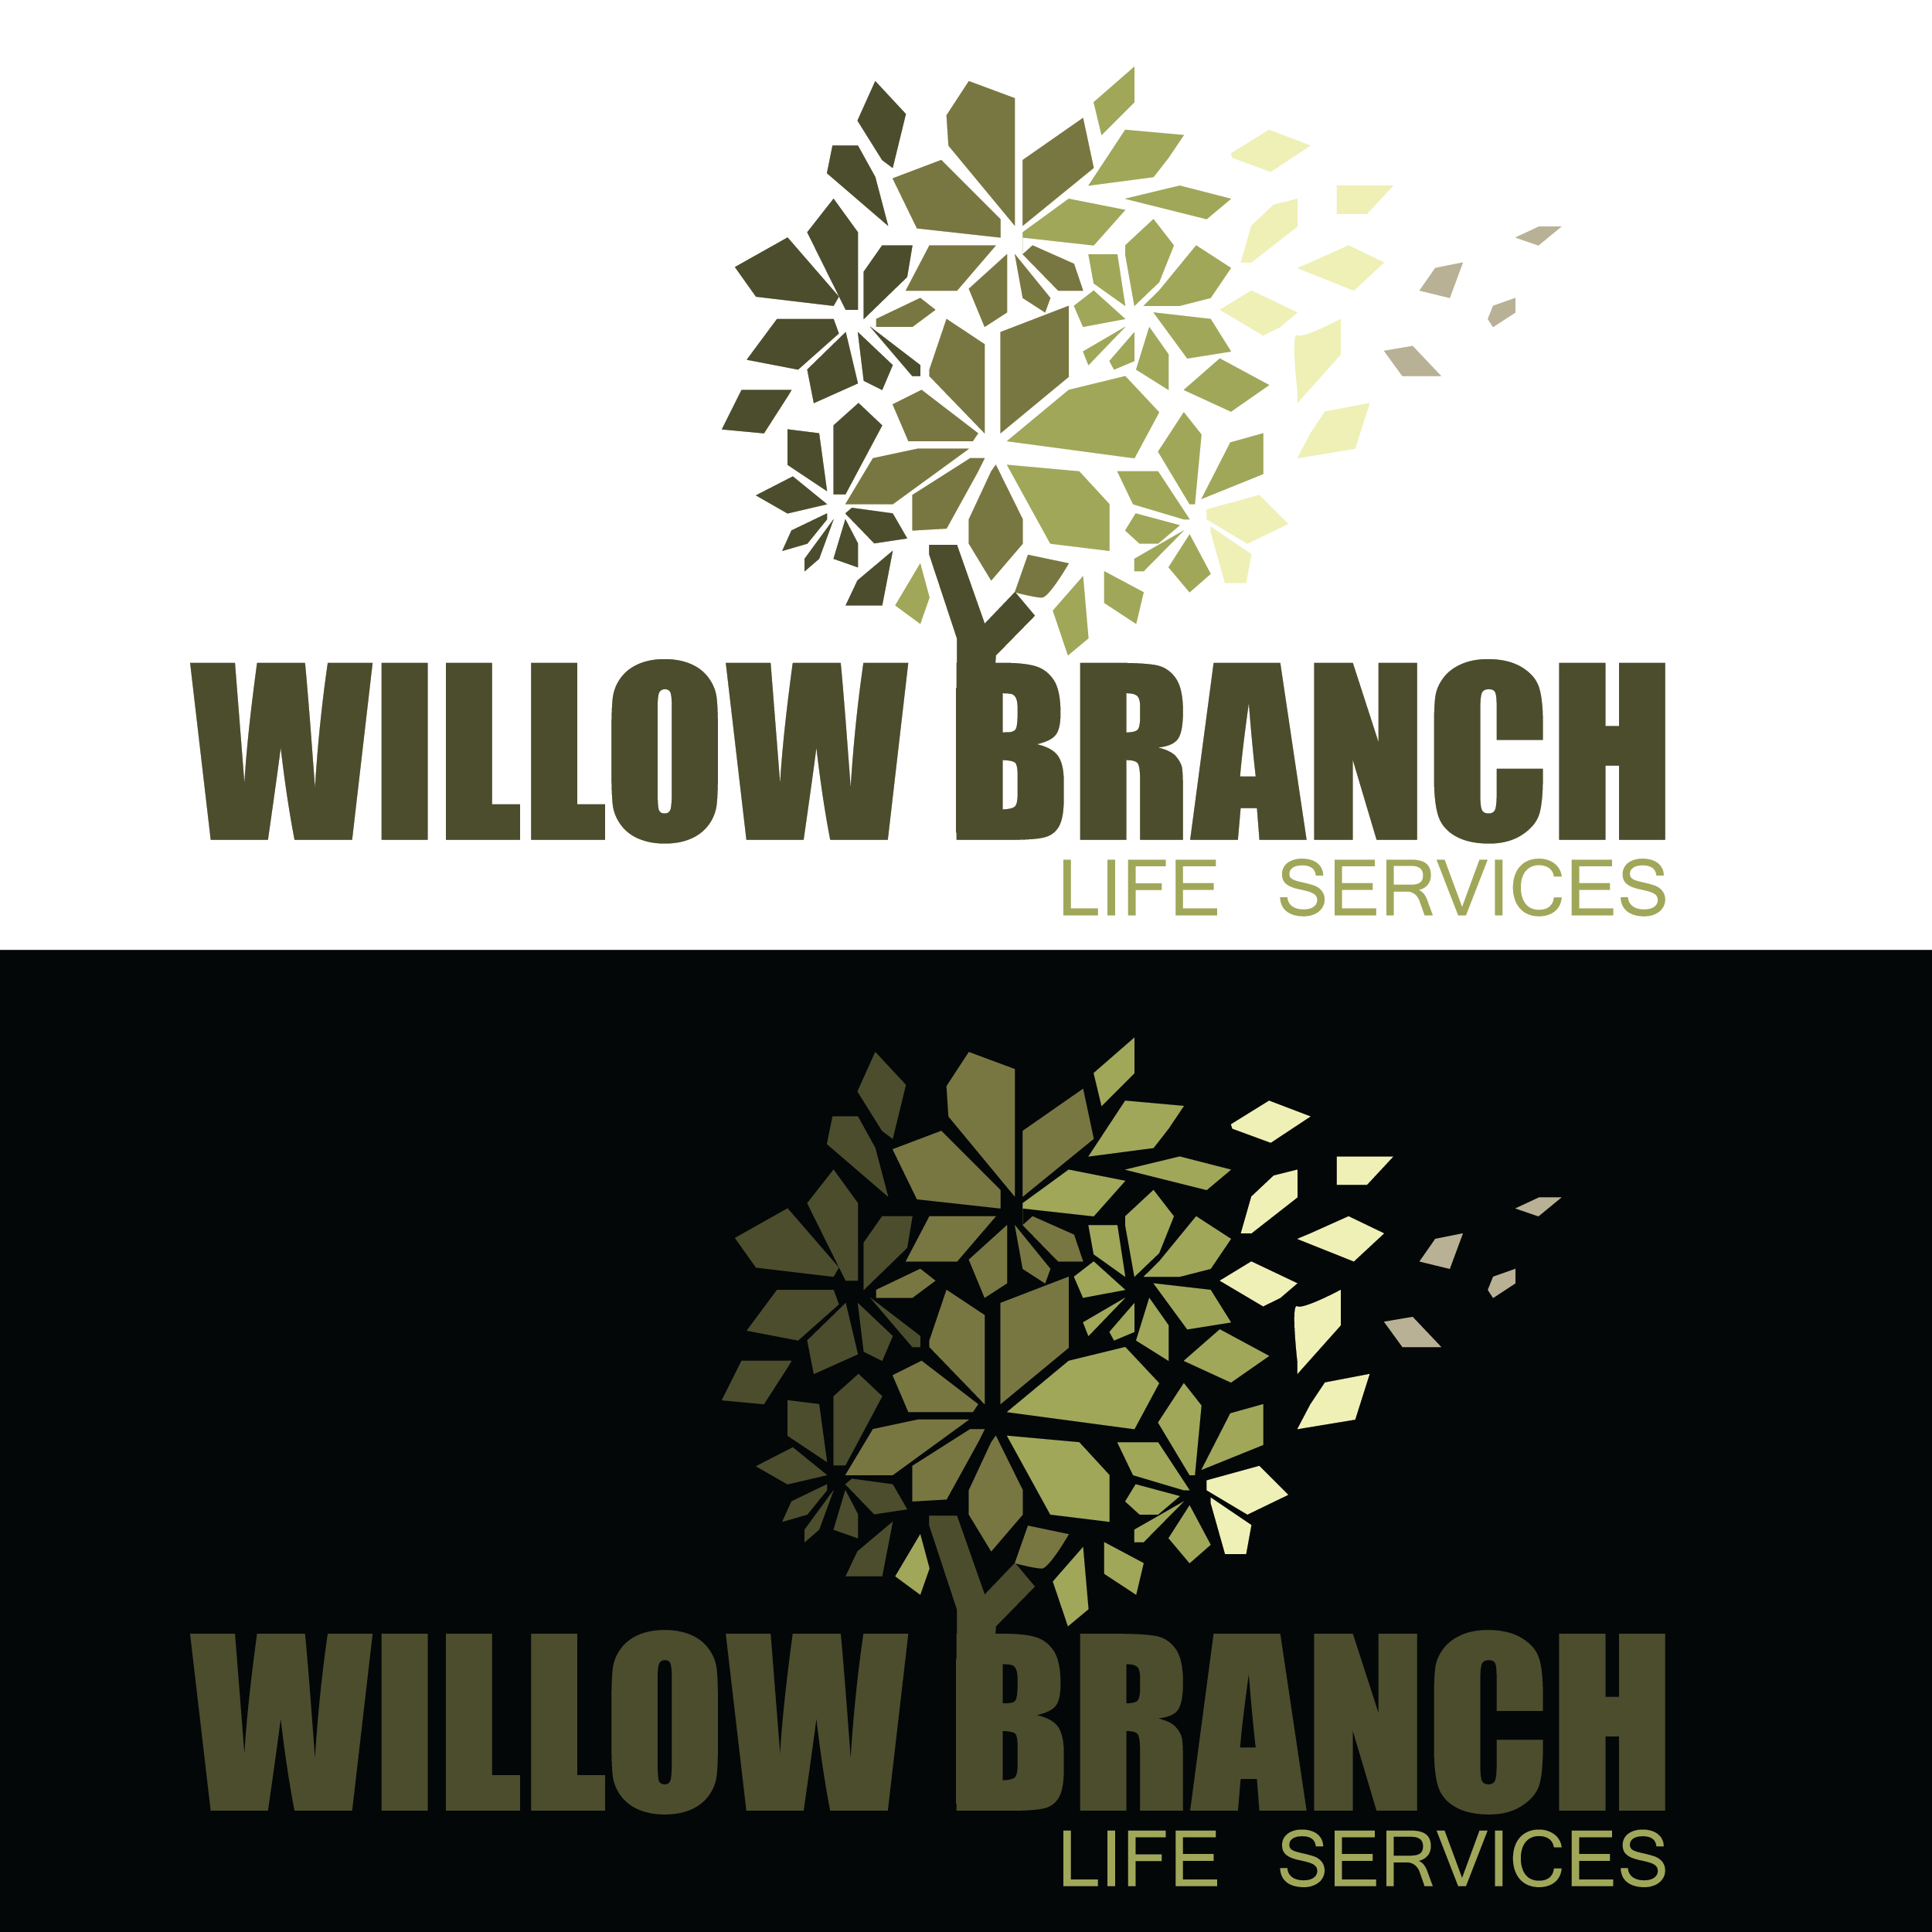 Logo Design by pojas12 - Entry No. 416 in the Logo Design Contest Artistic Logo Design for Willow Branch Life Service.